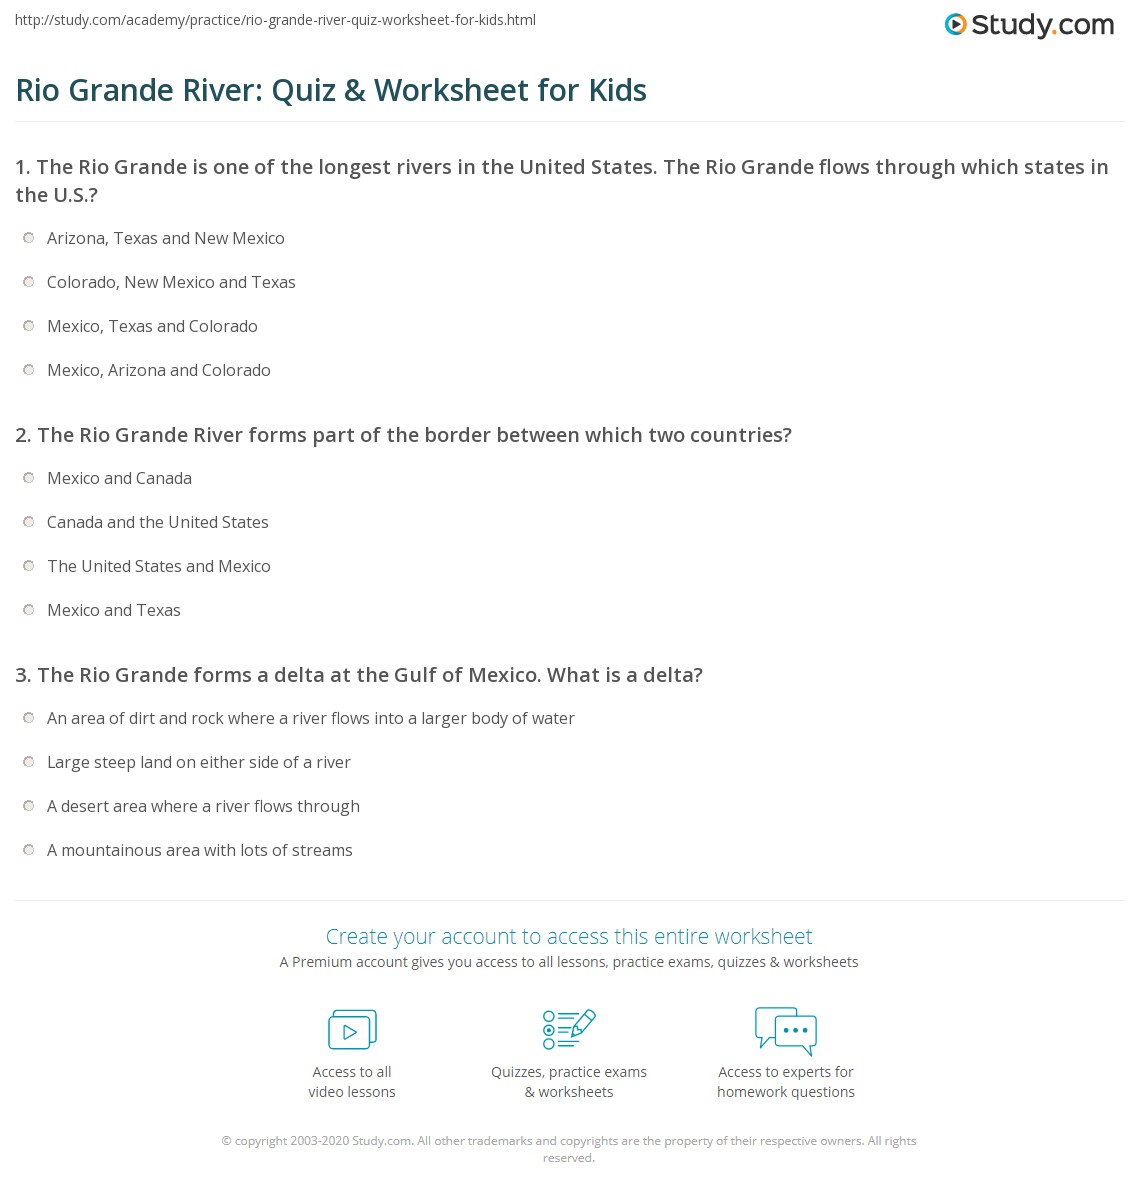 Rio Grande River Quiz Worksheet For Kids Studycom - Two longest rivers in the united states